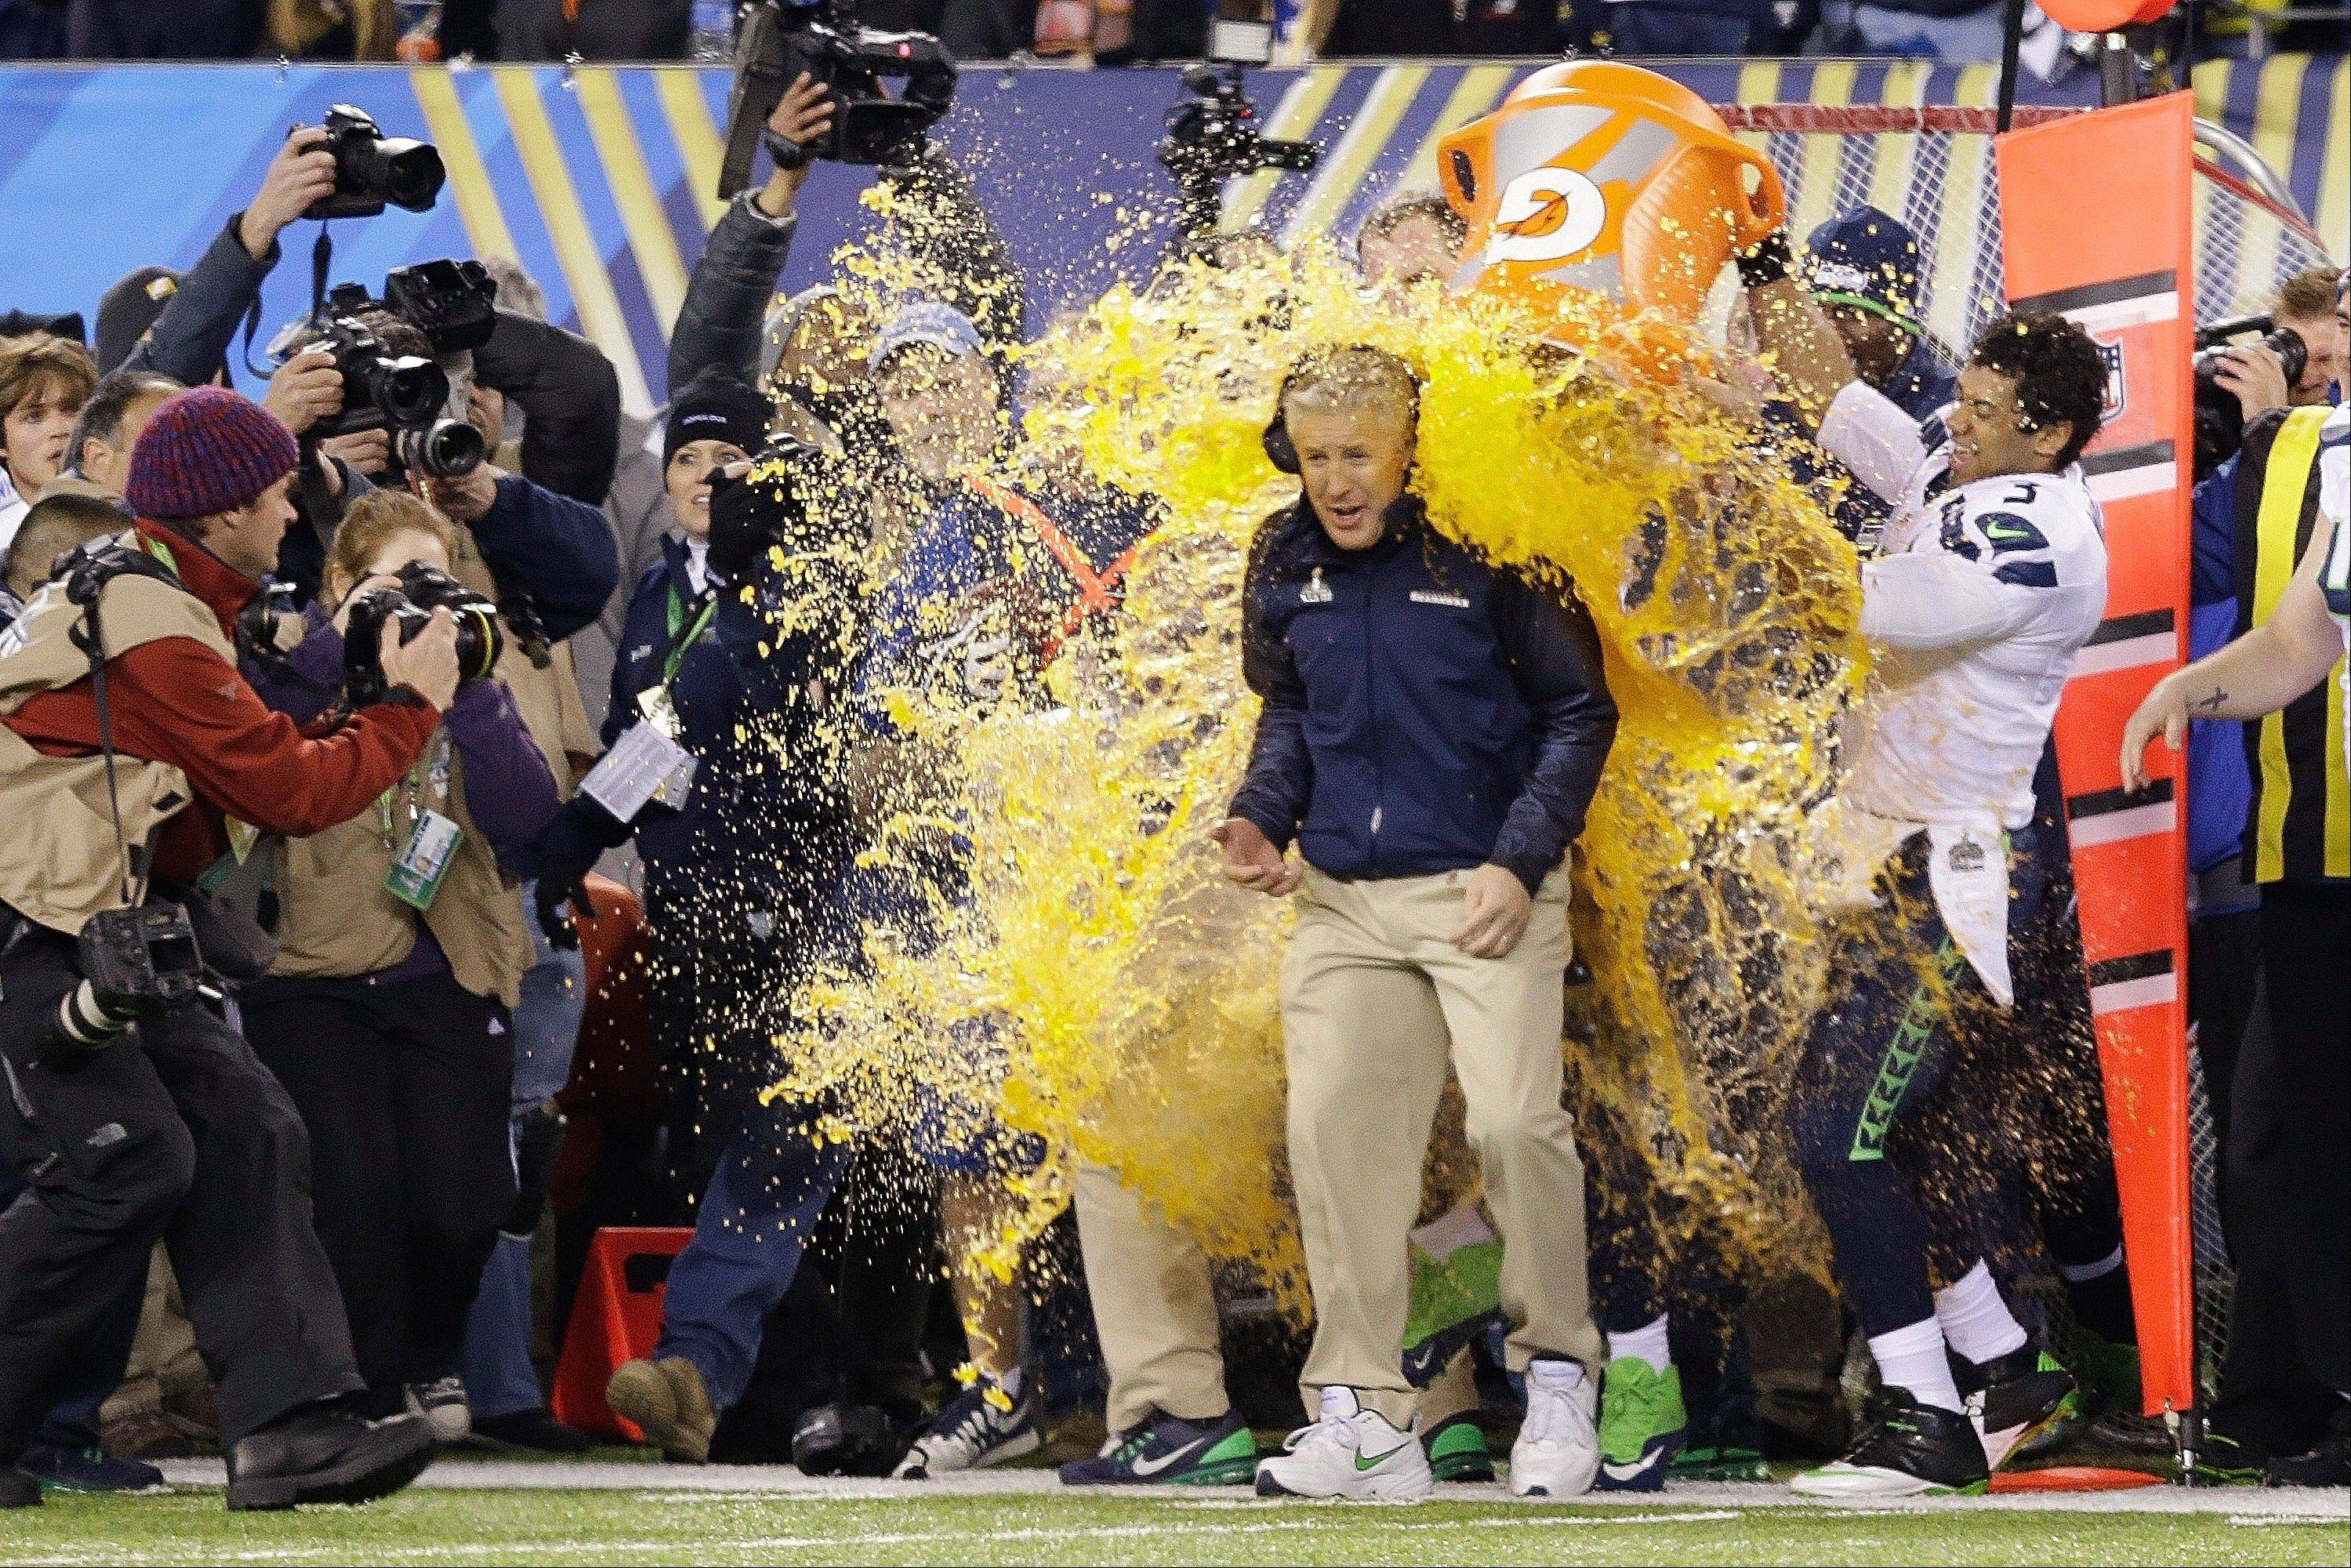 Seattle Seahawks head coach Pete Carroll is doused with Gatorade late in the second half. The Seahawks won 43-8.